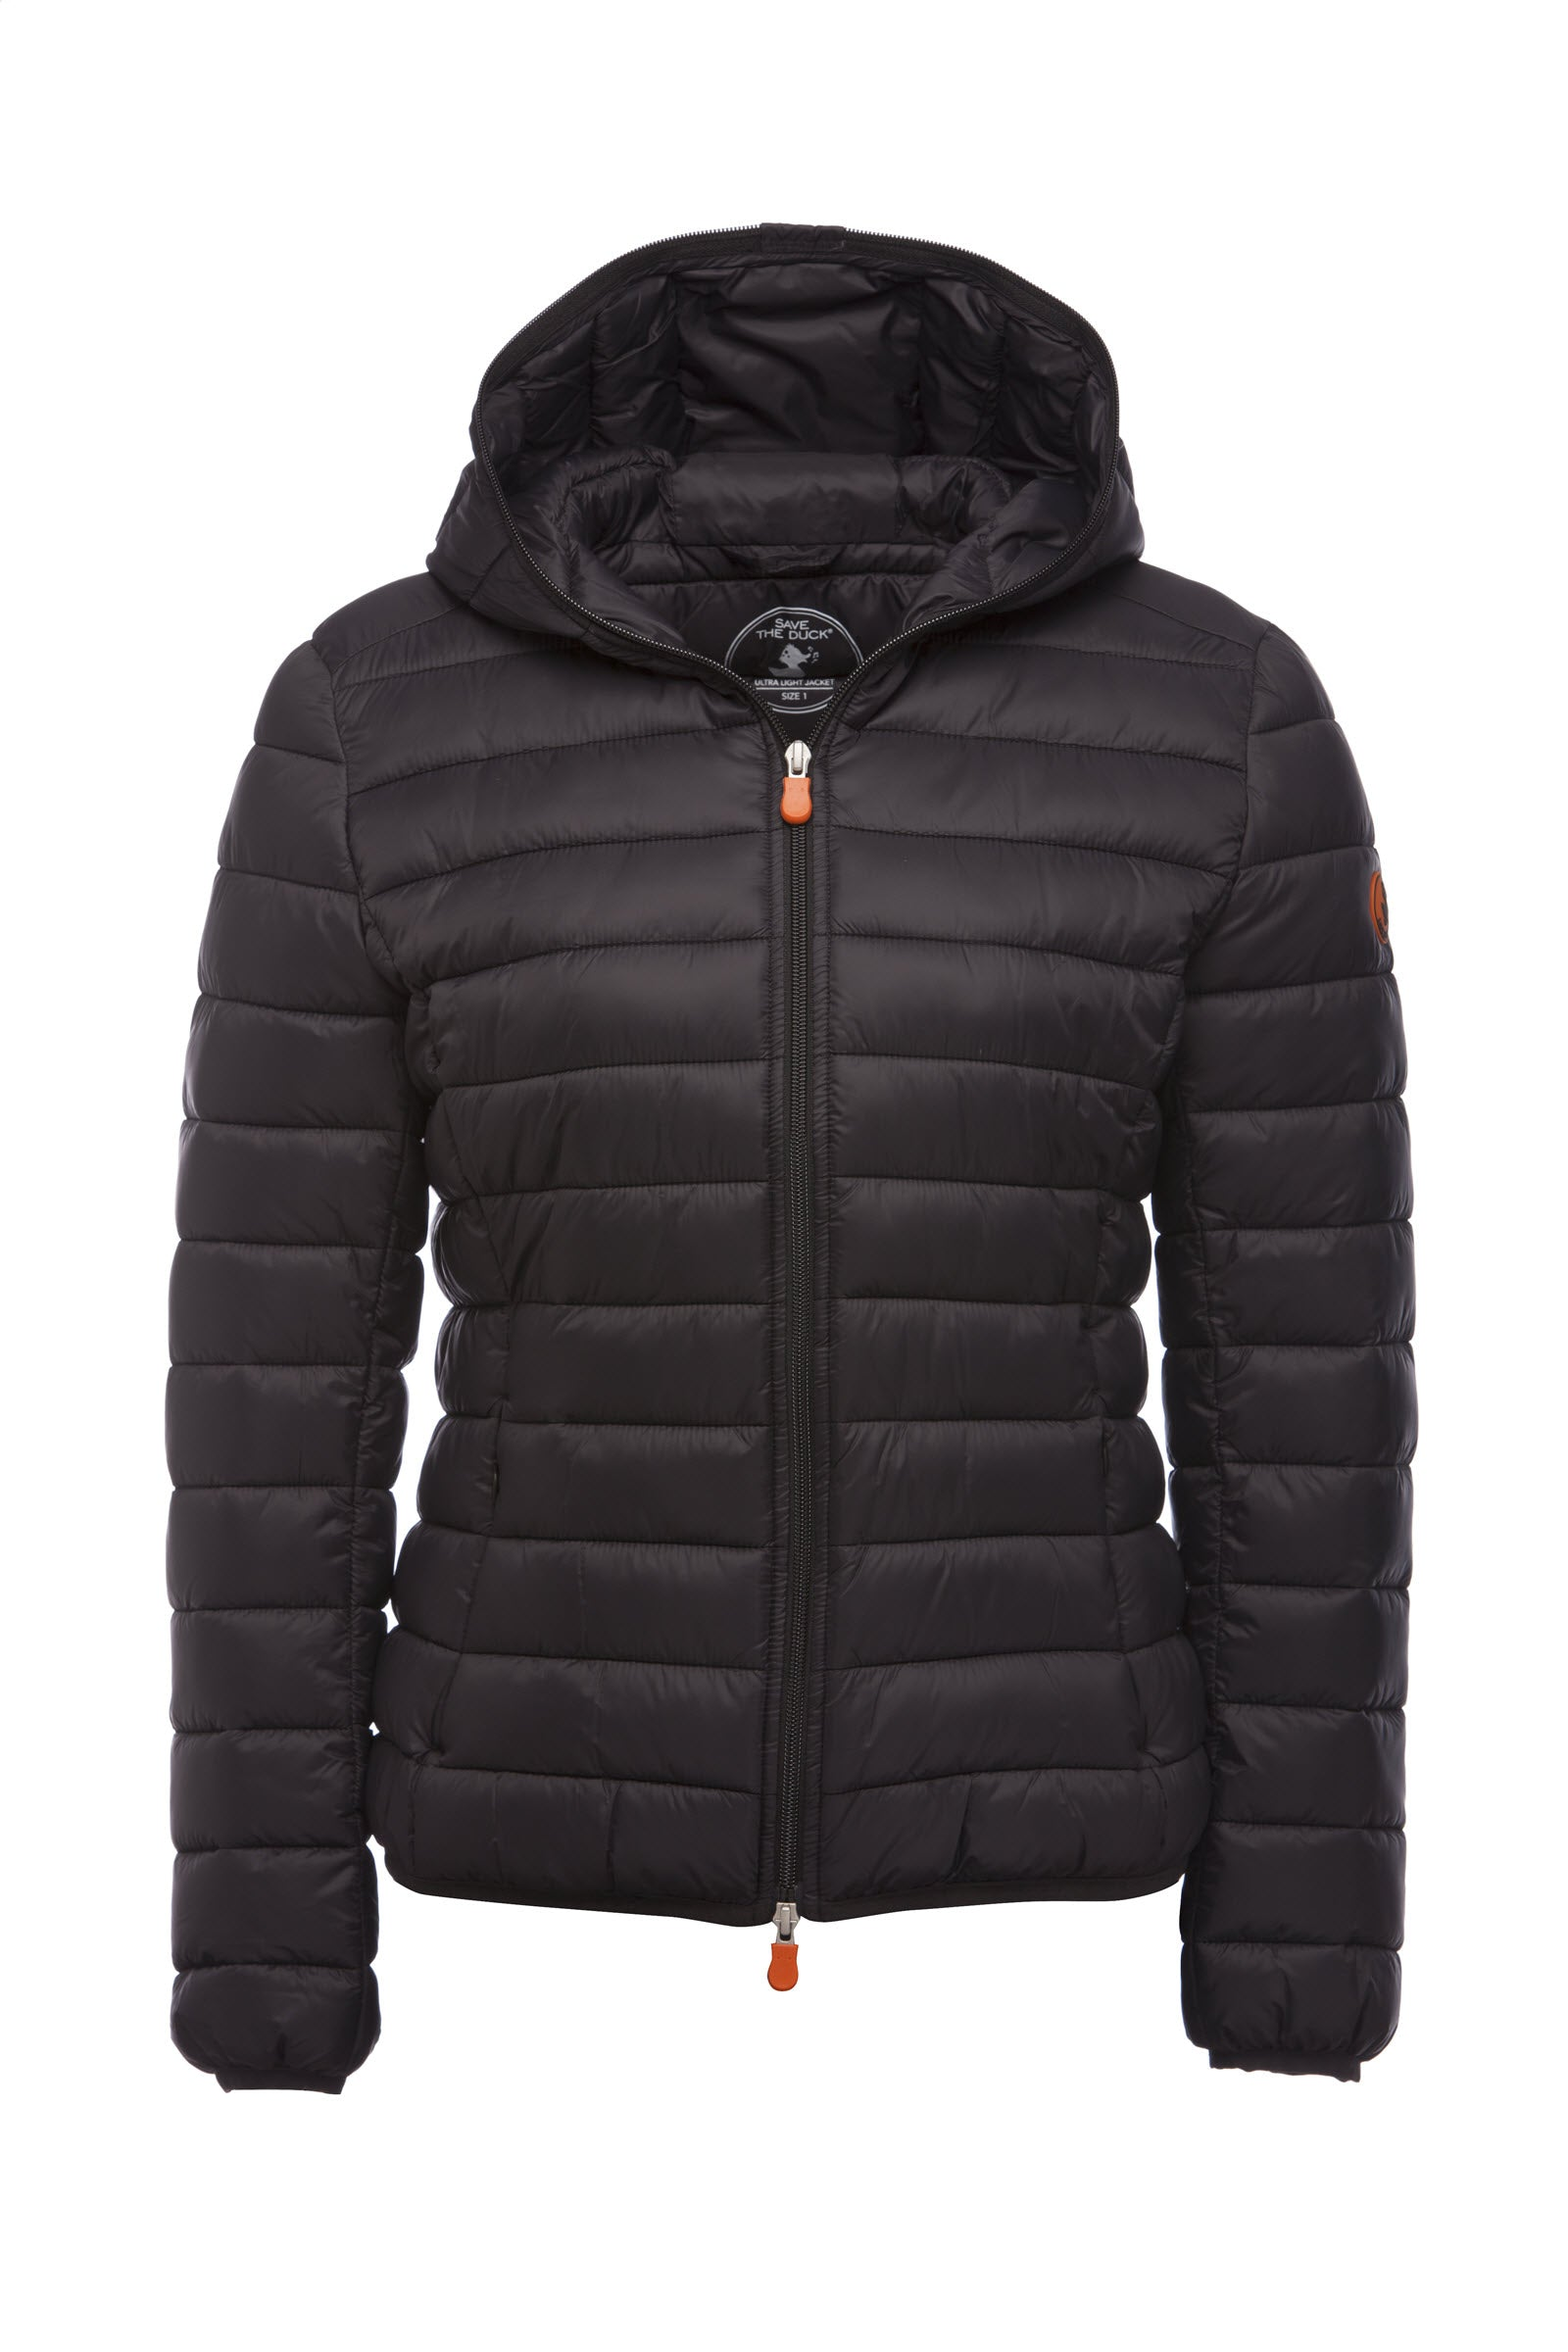 d8bc939e5 Save The Duck Women's Jacket in Black - Save the Duck